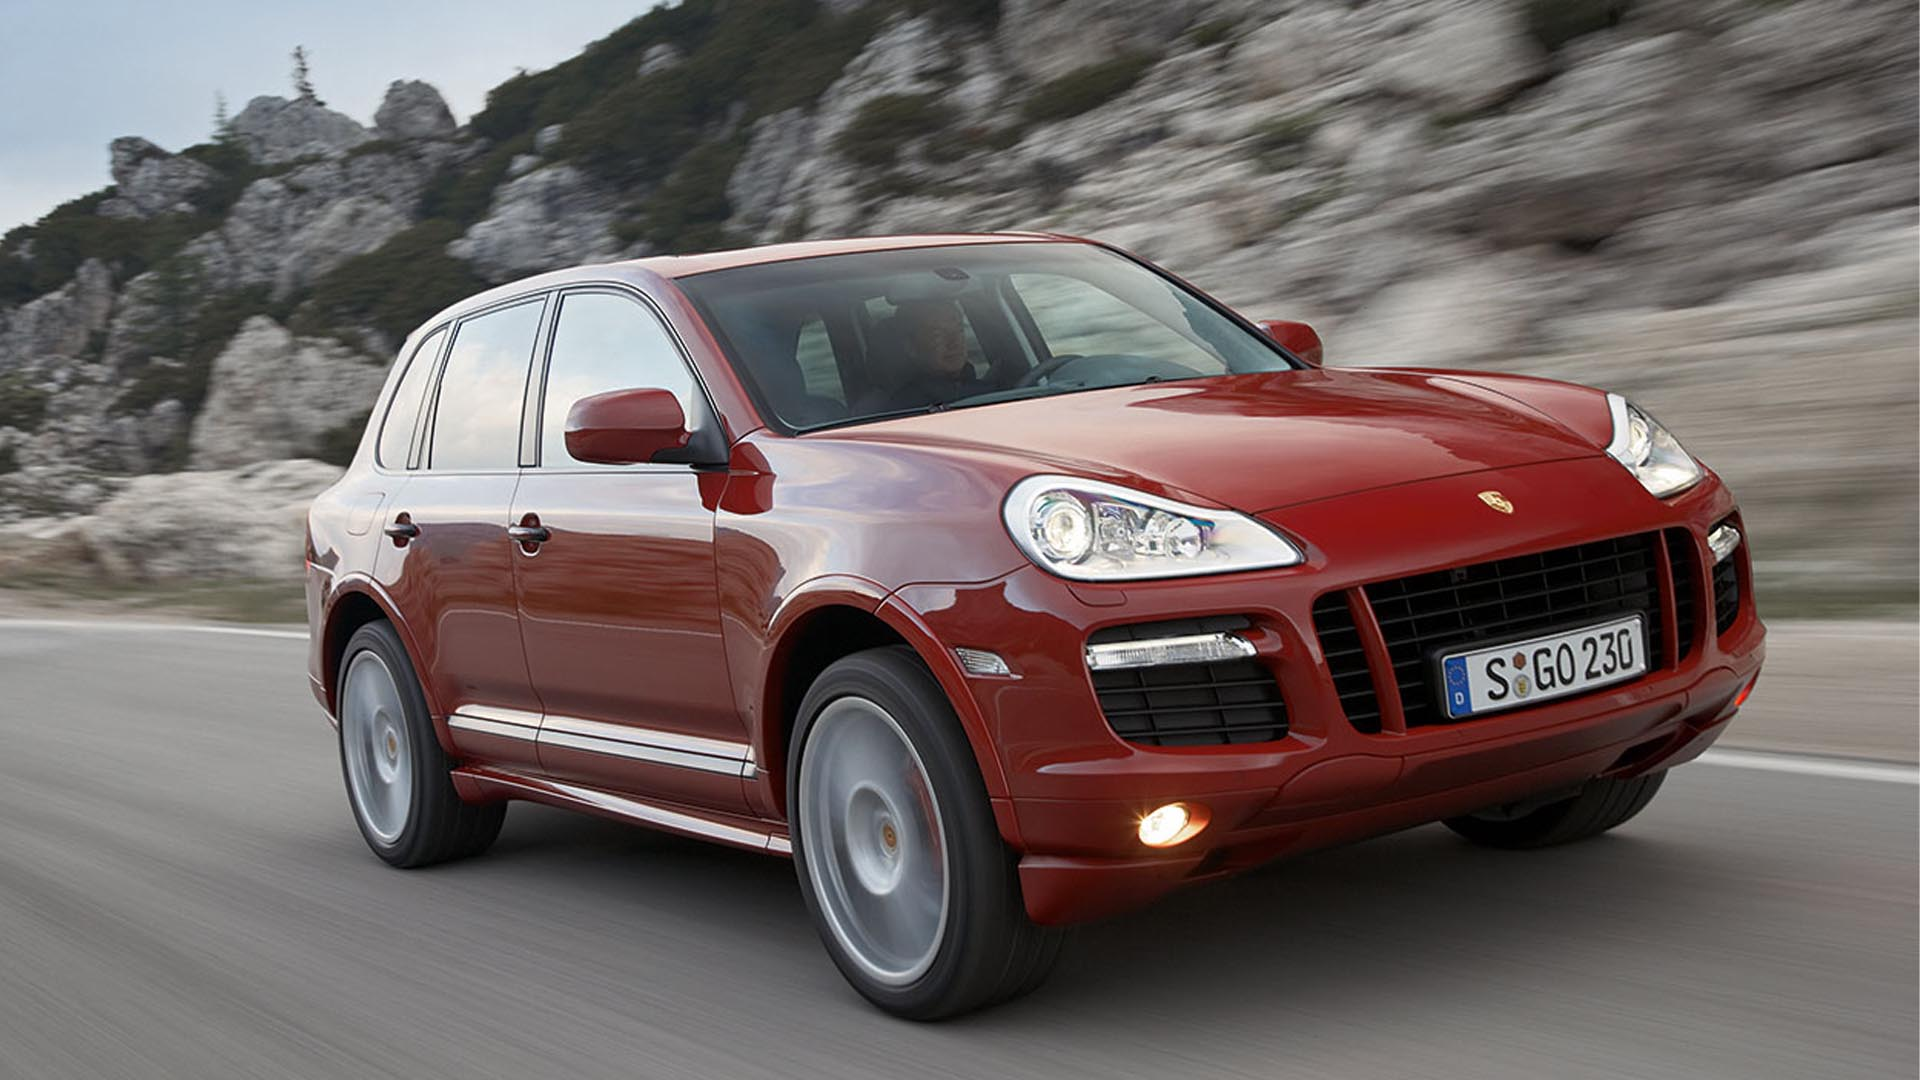 When To Replace Your Porsche Cayenne Brake Pads